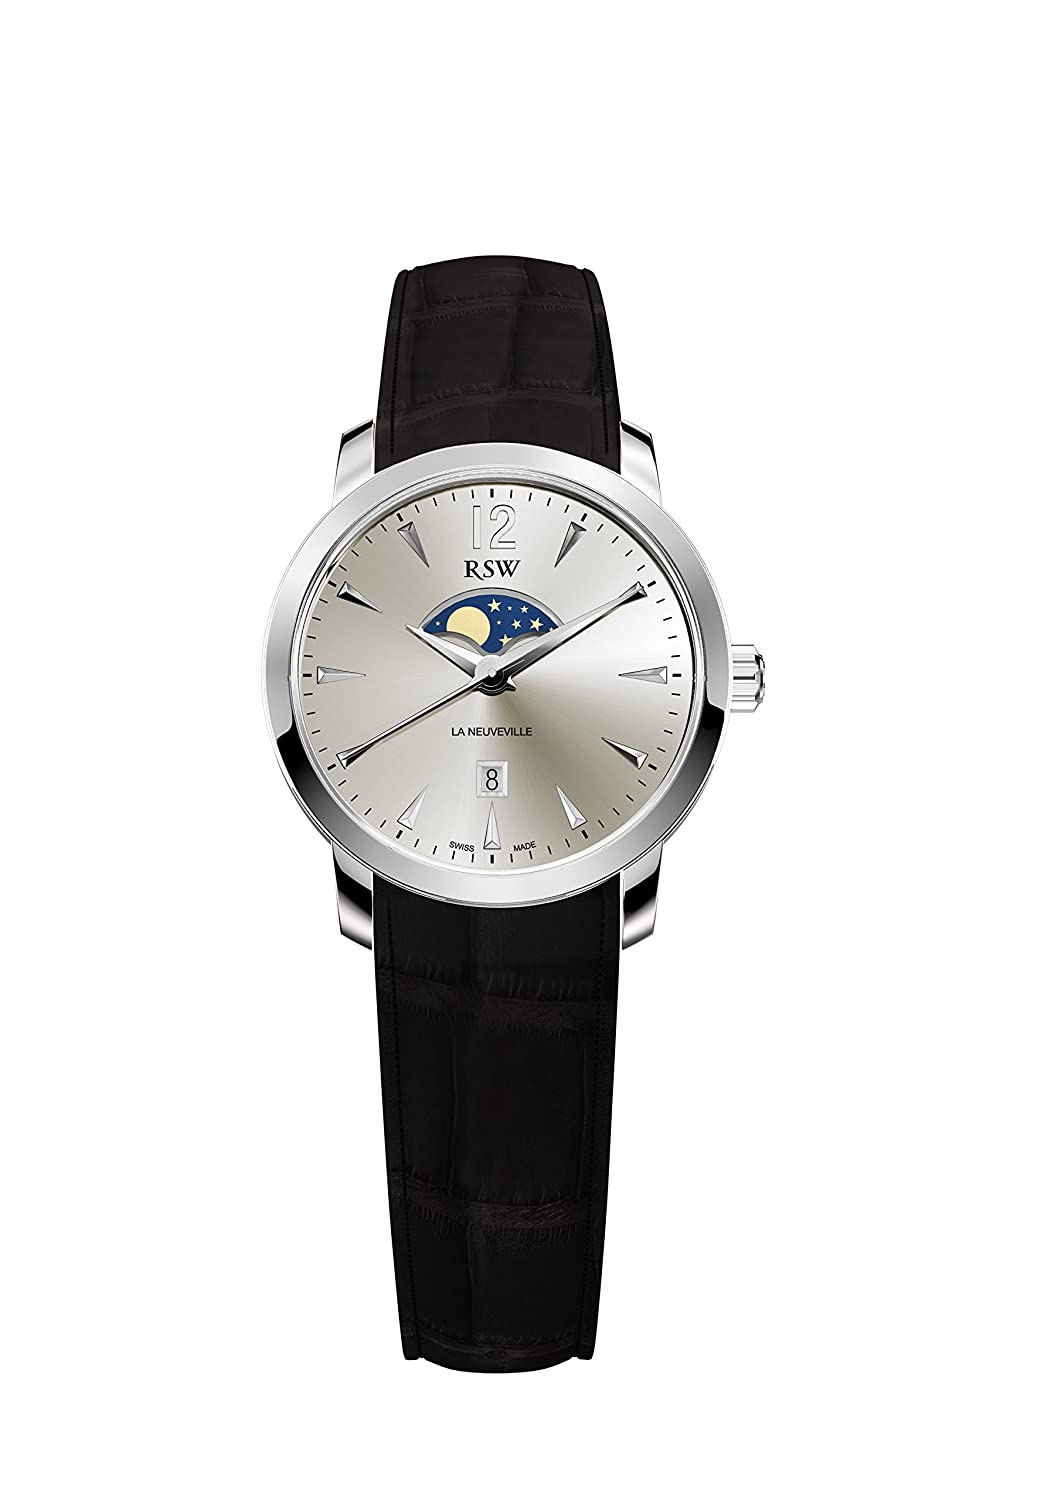 6346. BS. L1.5.00-La Neuveville Moonphase